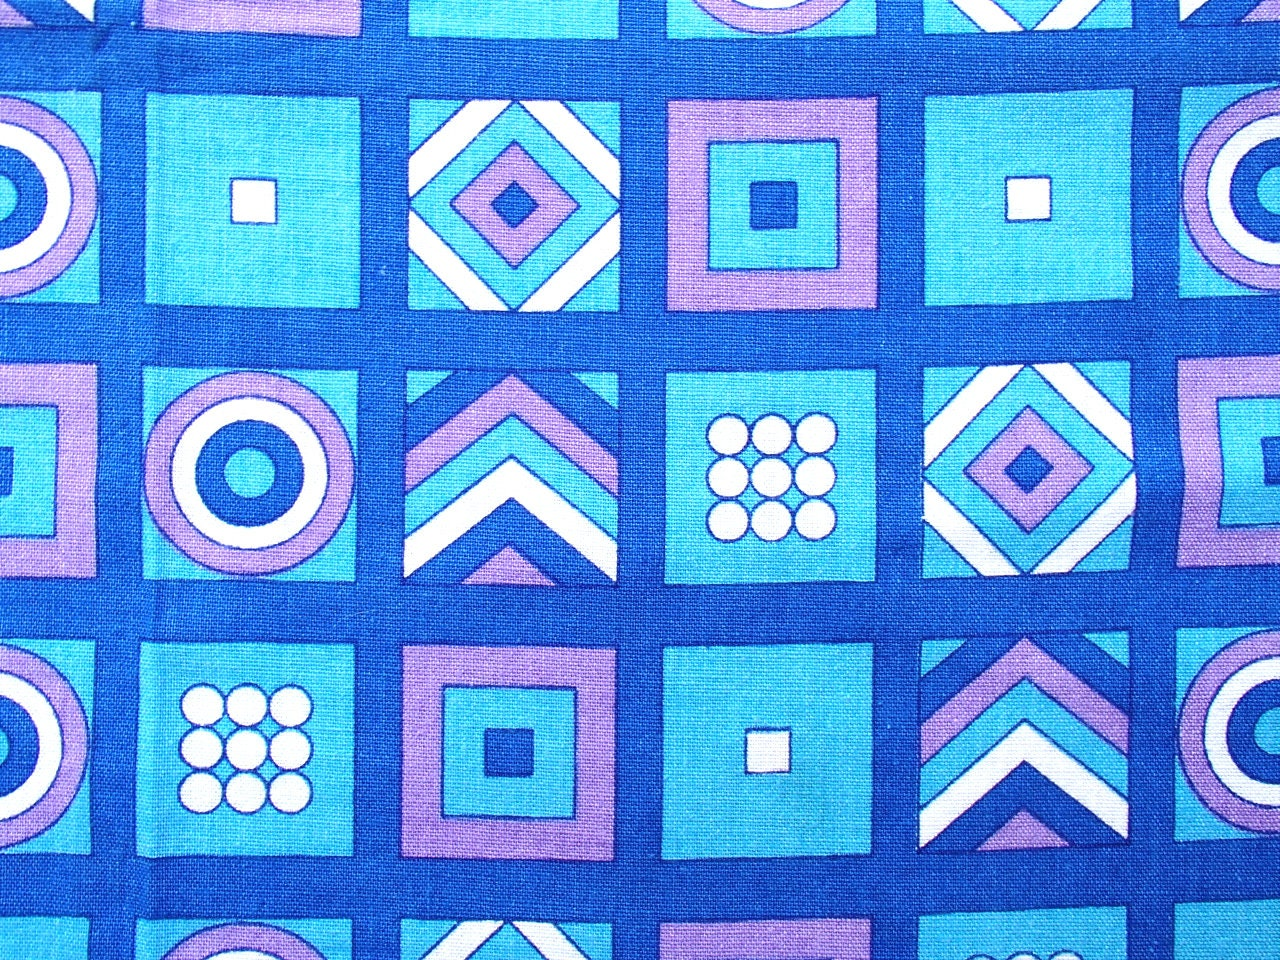 piece of dekoplus vintage fabric square: 115x115cm /